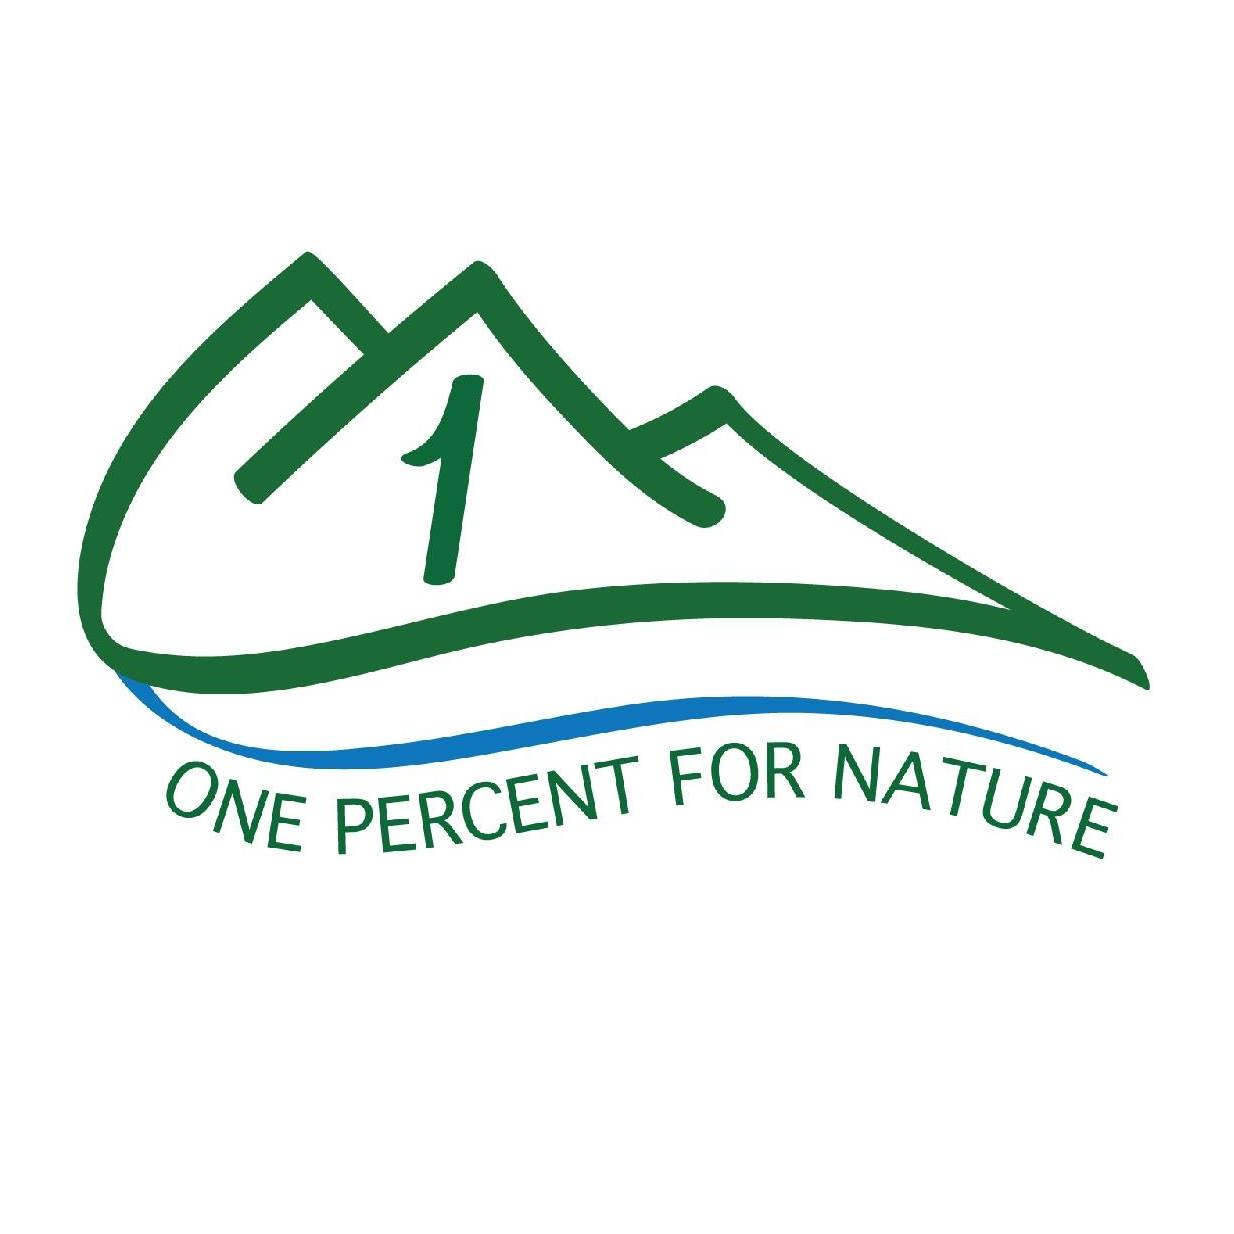 One Percent for Nature